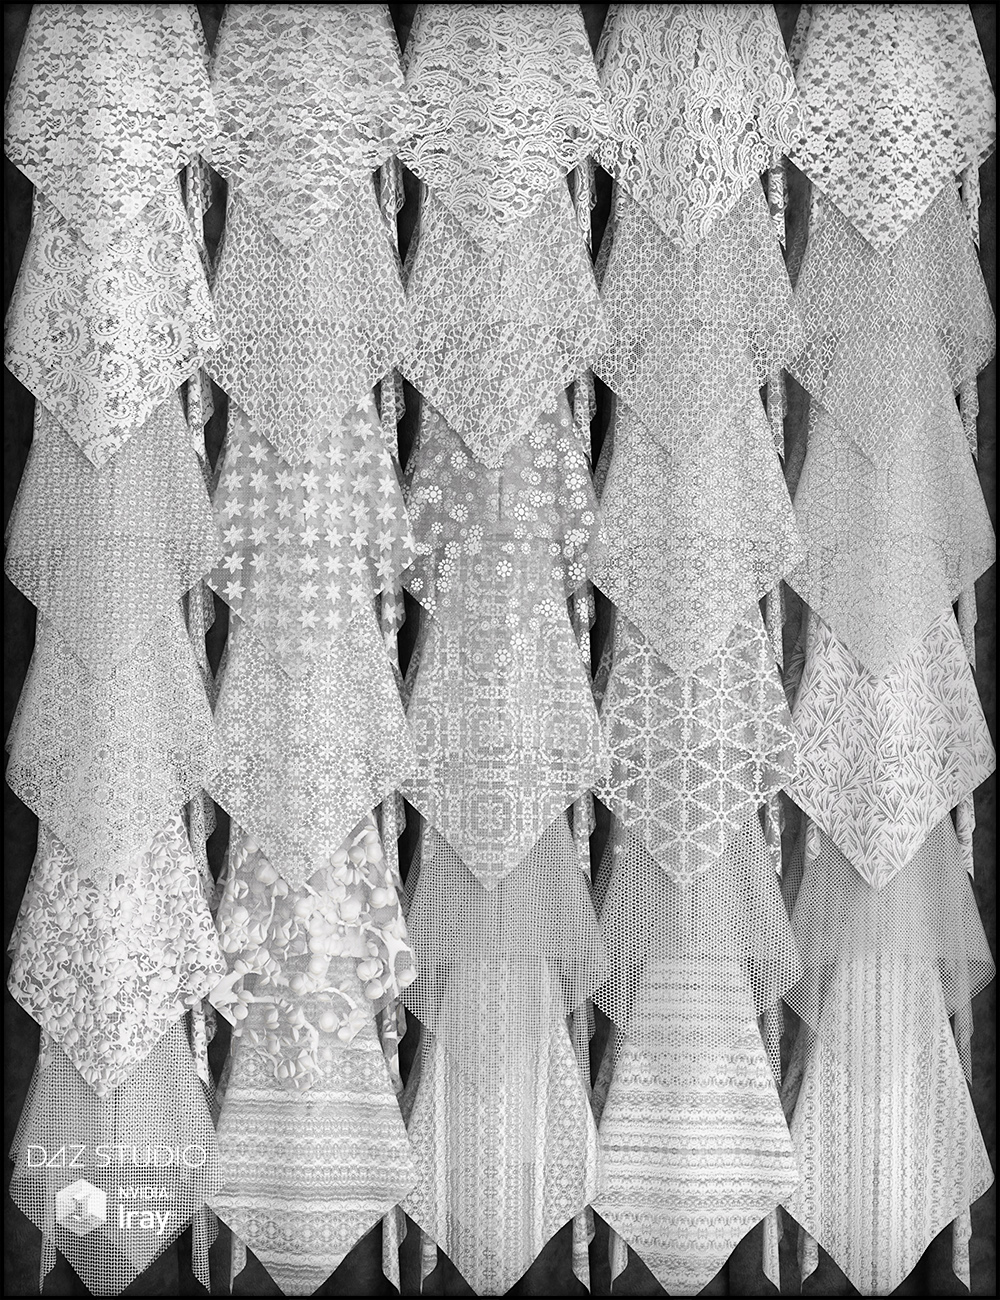 Fabric Basics Lace for Iray by: Fisty & Darc, 3D Models by Daz 3D